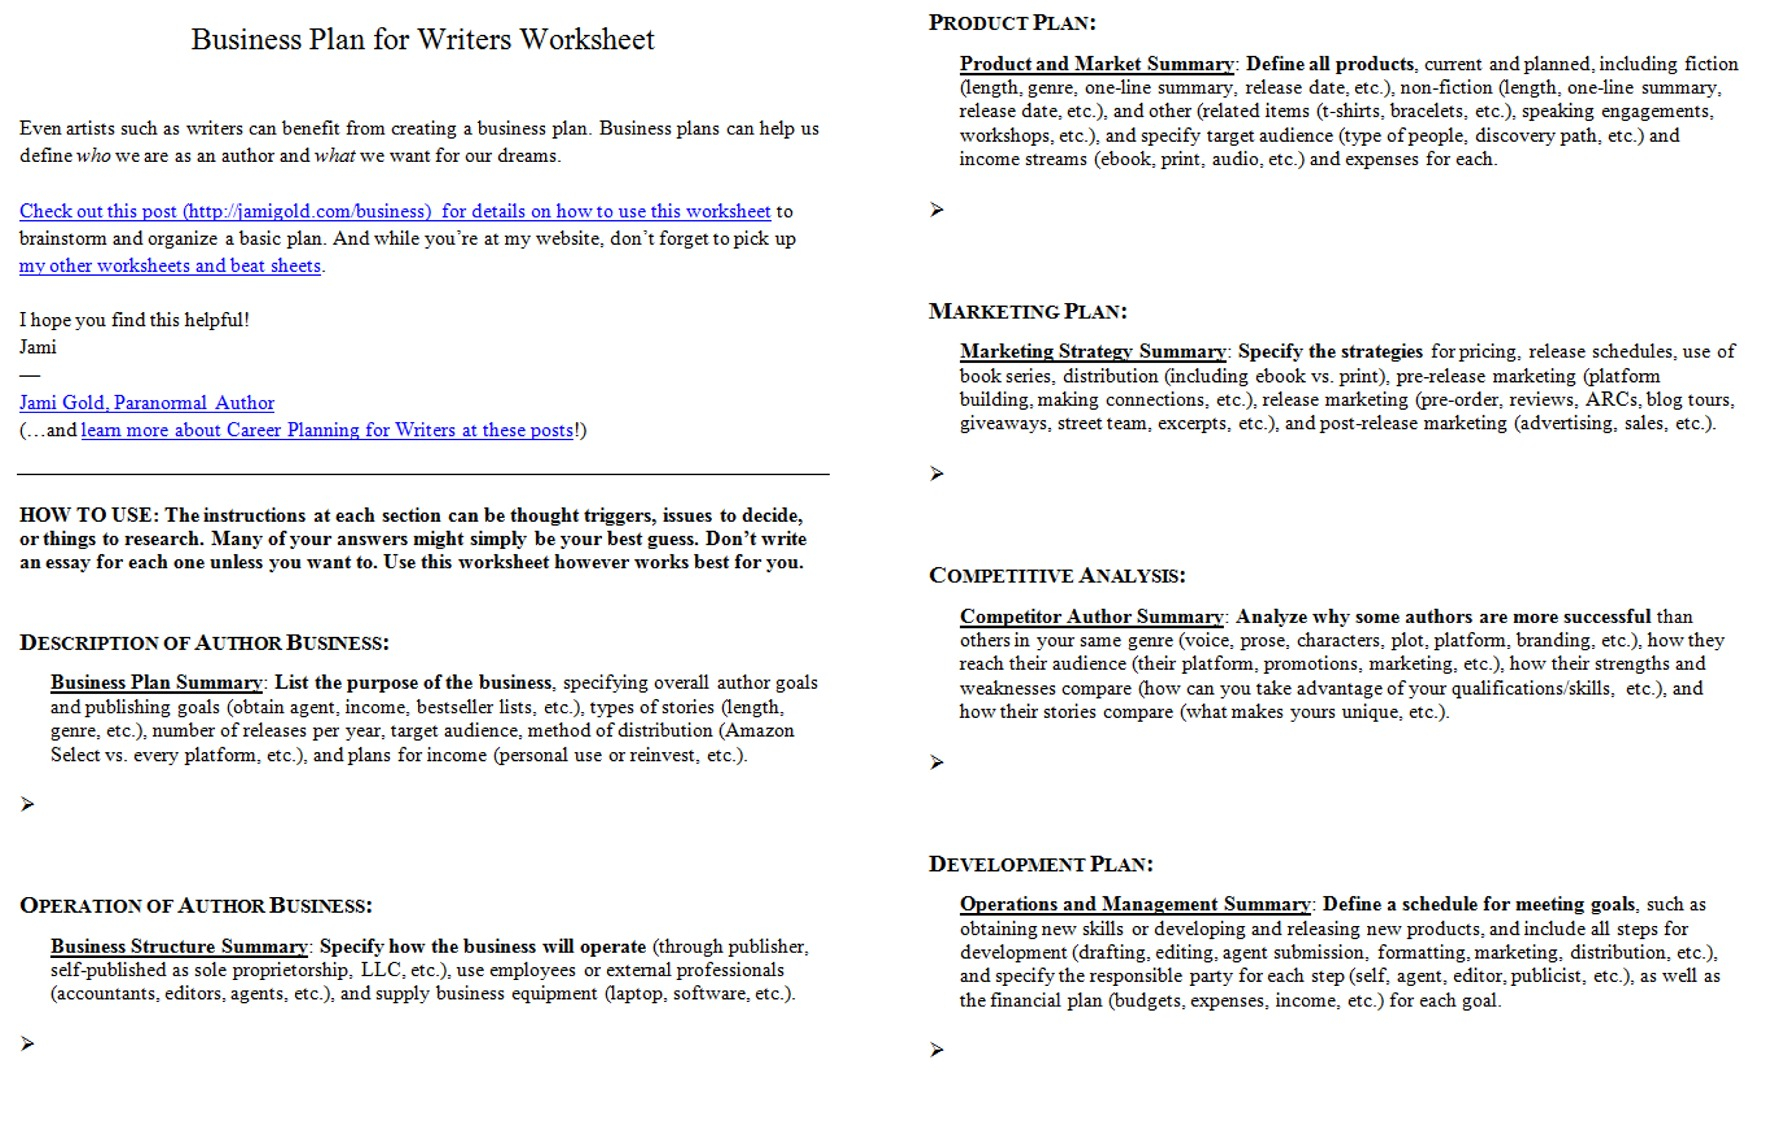 Aldiablosus  Fascinating Worksheets For Writers  Jami Gold Paranormal Author With Licious Screen Shot Of Both Pages Of The Business Plan For Writers Worksheet With Beauteous Dividing Monomials Worksheets Also Compound Words Worksheets Grade  In Addition Rhyming Words Worksheet First Grade And Middle School Figurative Language Worksheets As Well As Worksheets On Culture Additionally Numbers And Words Worksheet From Jamigoldcom With Aldiablosus  Licious Worksheets For Writers  Jami Gold Paranormal Author With Beauteous Screen Shot Of Both Pages Of The Business Plan For Writers Worksheet And Fascinating Dividing Monomials Worksheets Also Compound Words Worksheets Grade  In Addition Rhyming Words Worksheet First Grade From Jamigoldcom